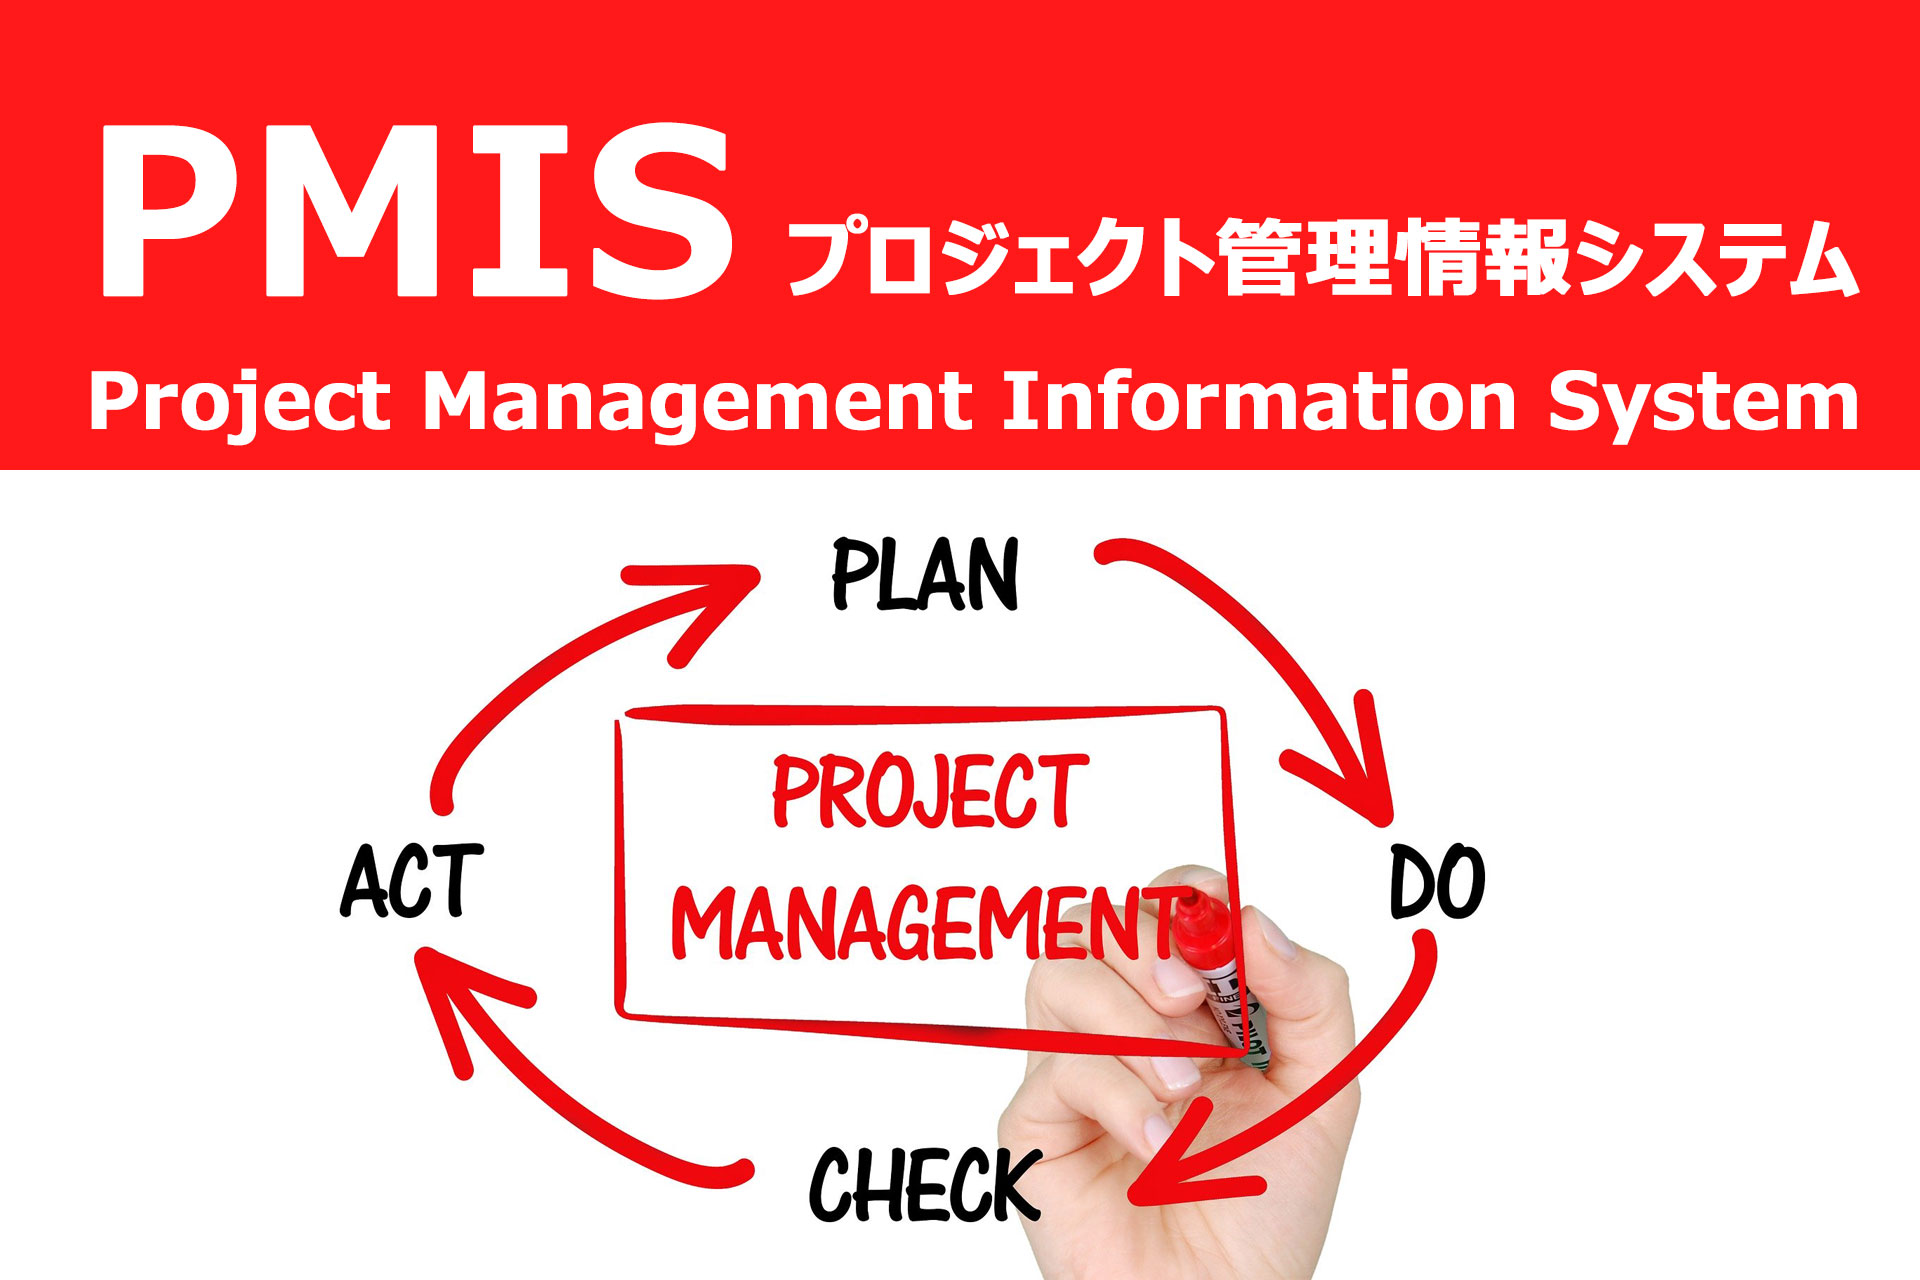 PMIS プロジェクト管理情報システム Project Management Information System